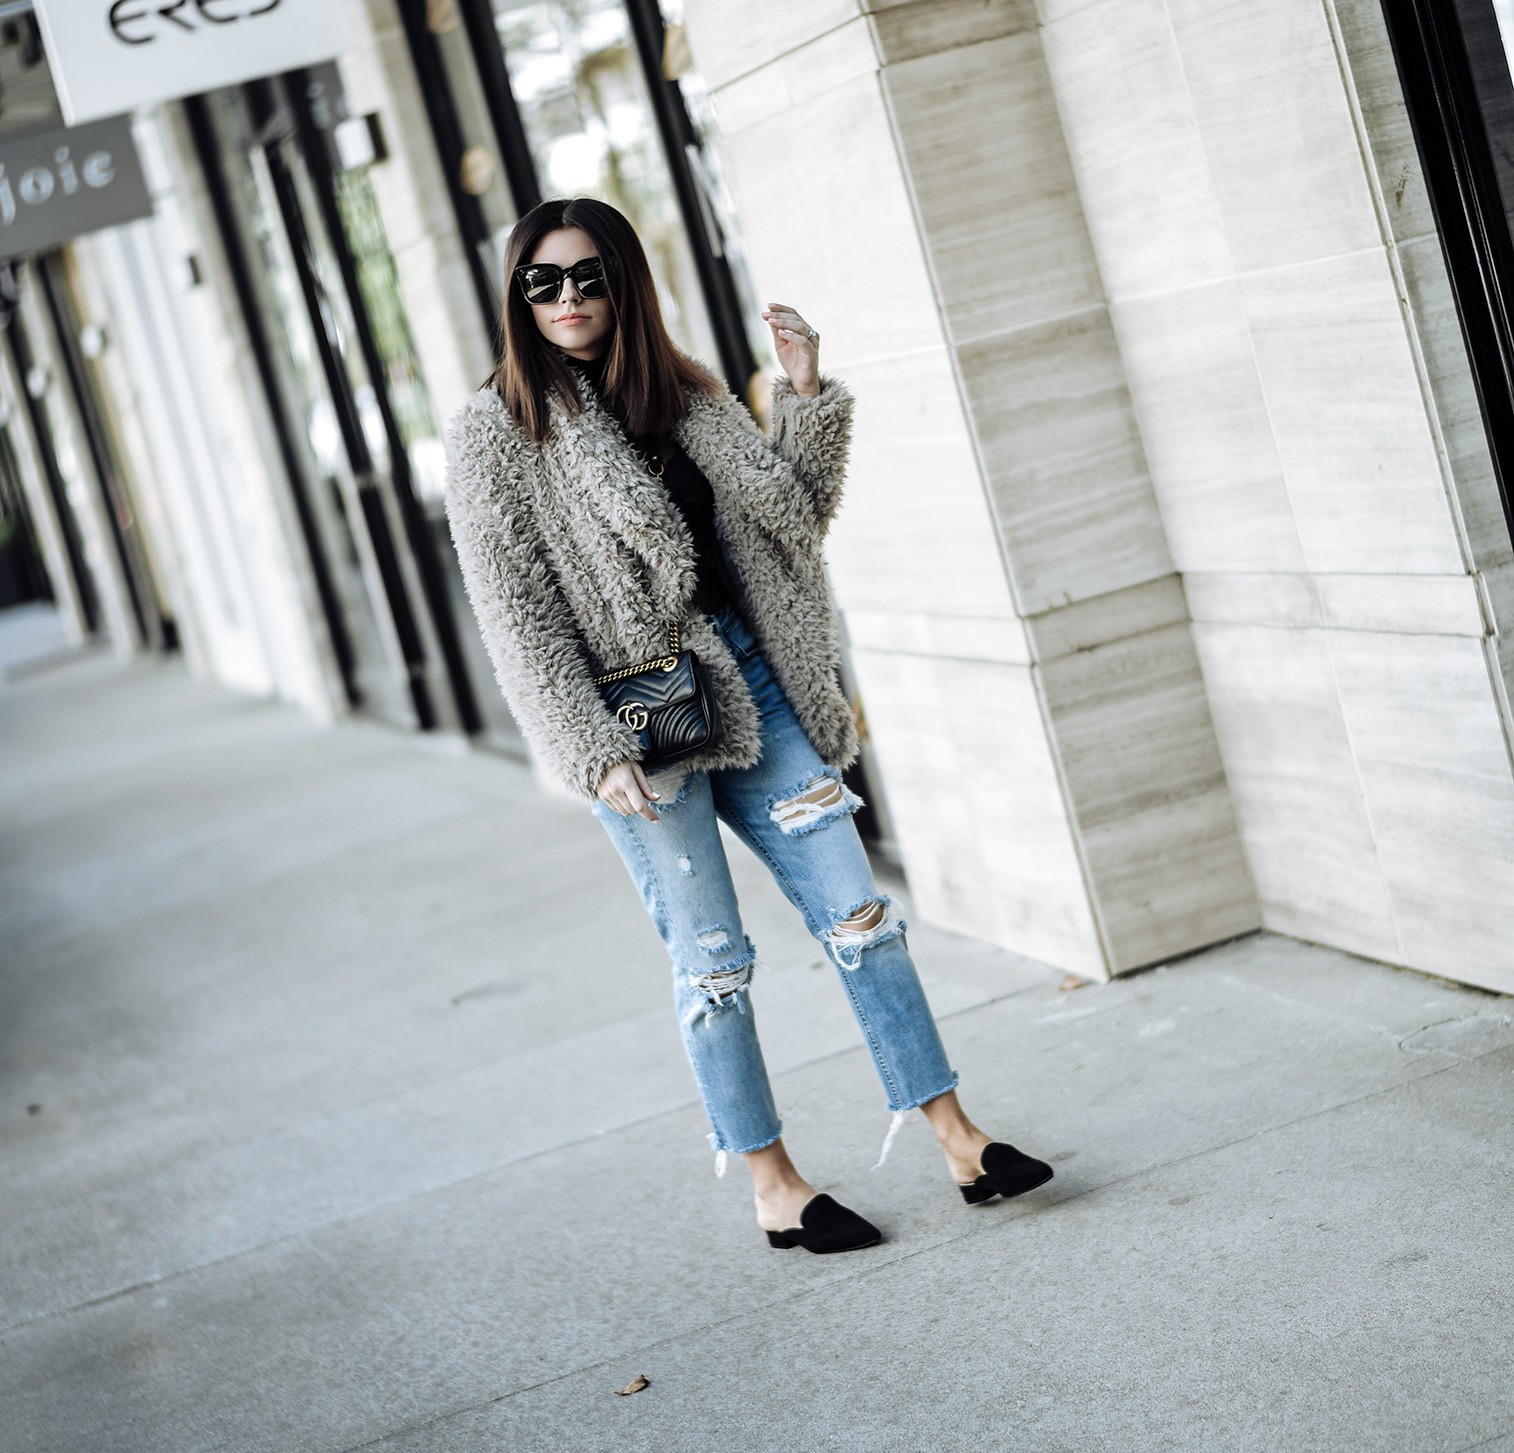 Must have fall items with Zappos and Cole Haan Cole Haan | Girlfrnd Denim | Gucci Marmont bag in black | Faux Fur Blush Jacket in Blush (Similar) |Tiffany Jais fashion and lifestyle blogger of Flaunt and Center | Houston fashion blogger | Streetstyle blog | Personal style online #falloutfits #colehaan #fauxfurcoat #fauxfuroutfits